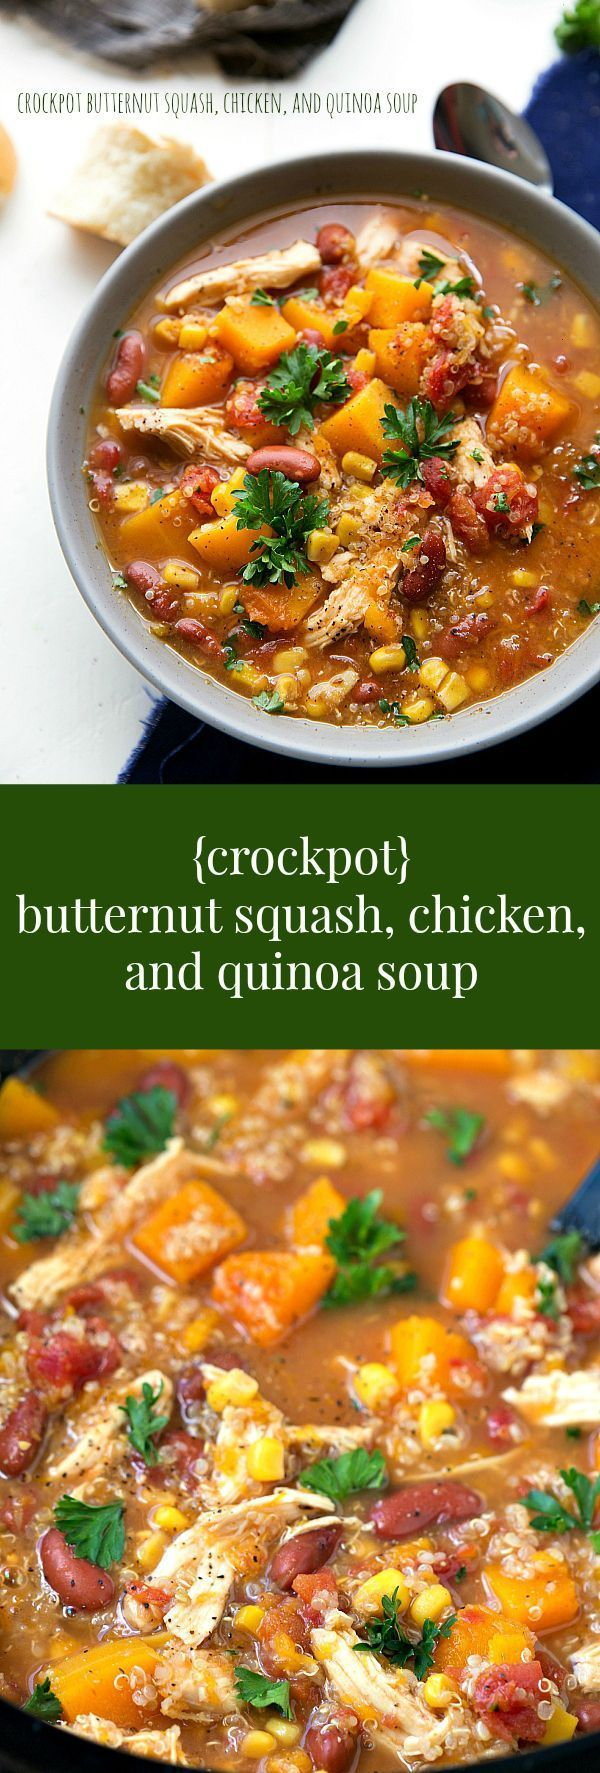 Dump it and forget it!! A super simple slow cooker butternut squash, chicken, and quinoa soup. The crockpot does all the work! #chicken #quinoa #recipe